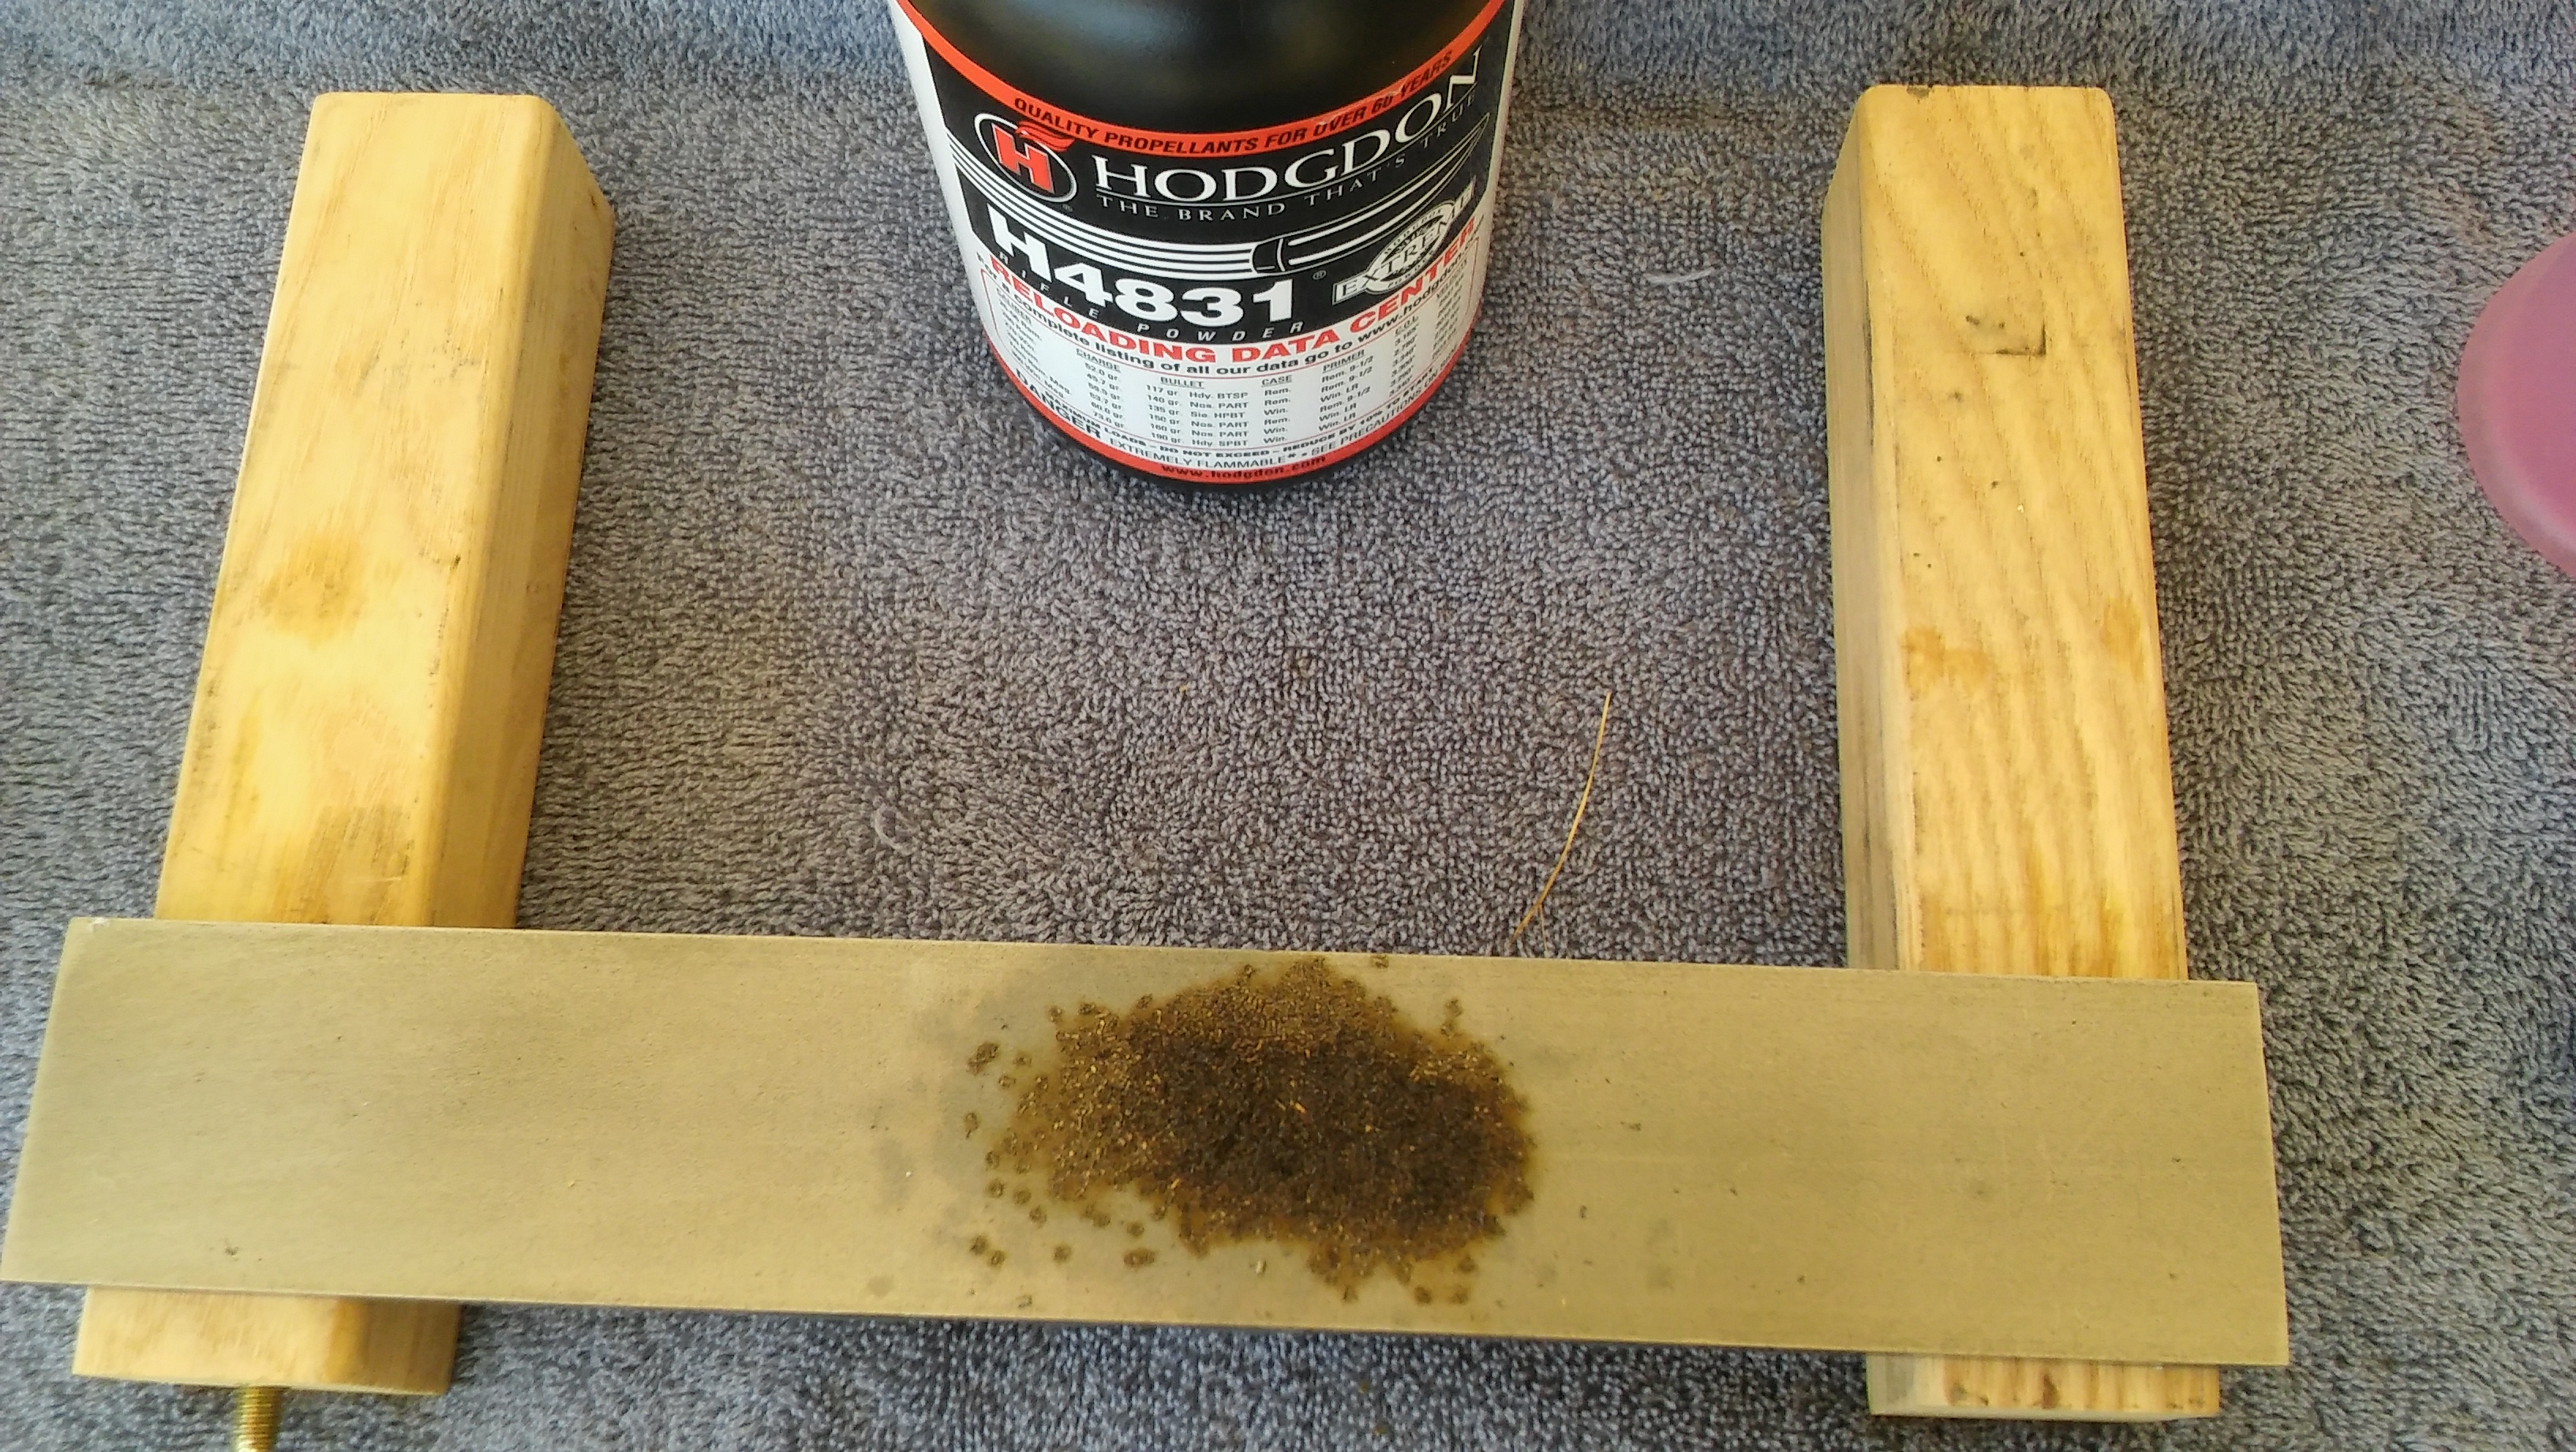 gun cleaner test - burnt powder